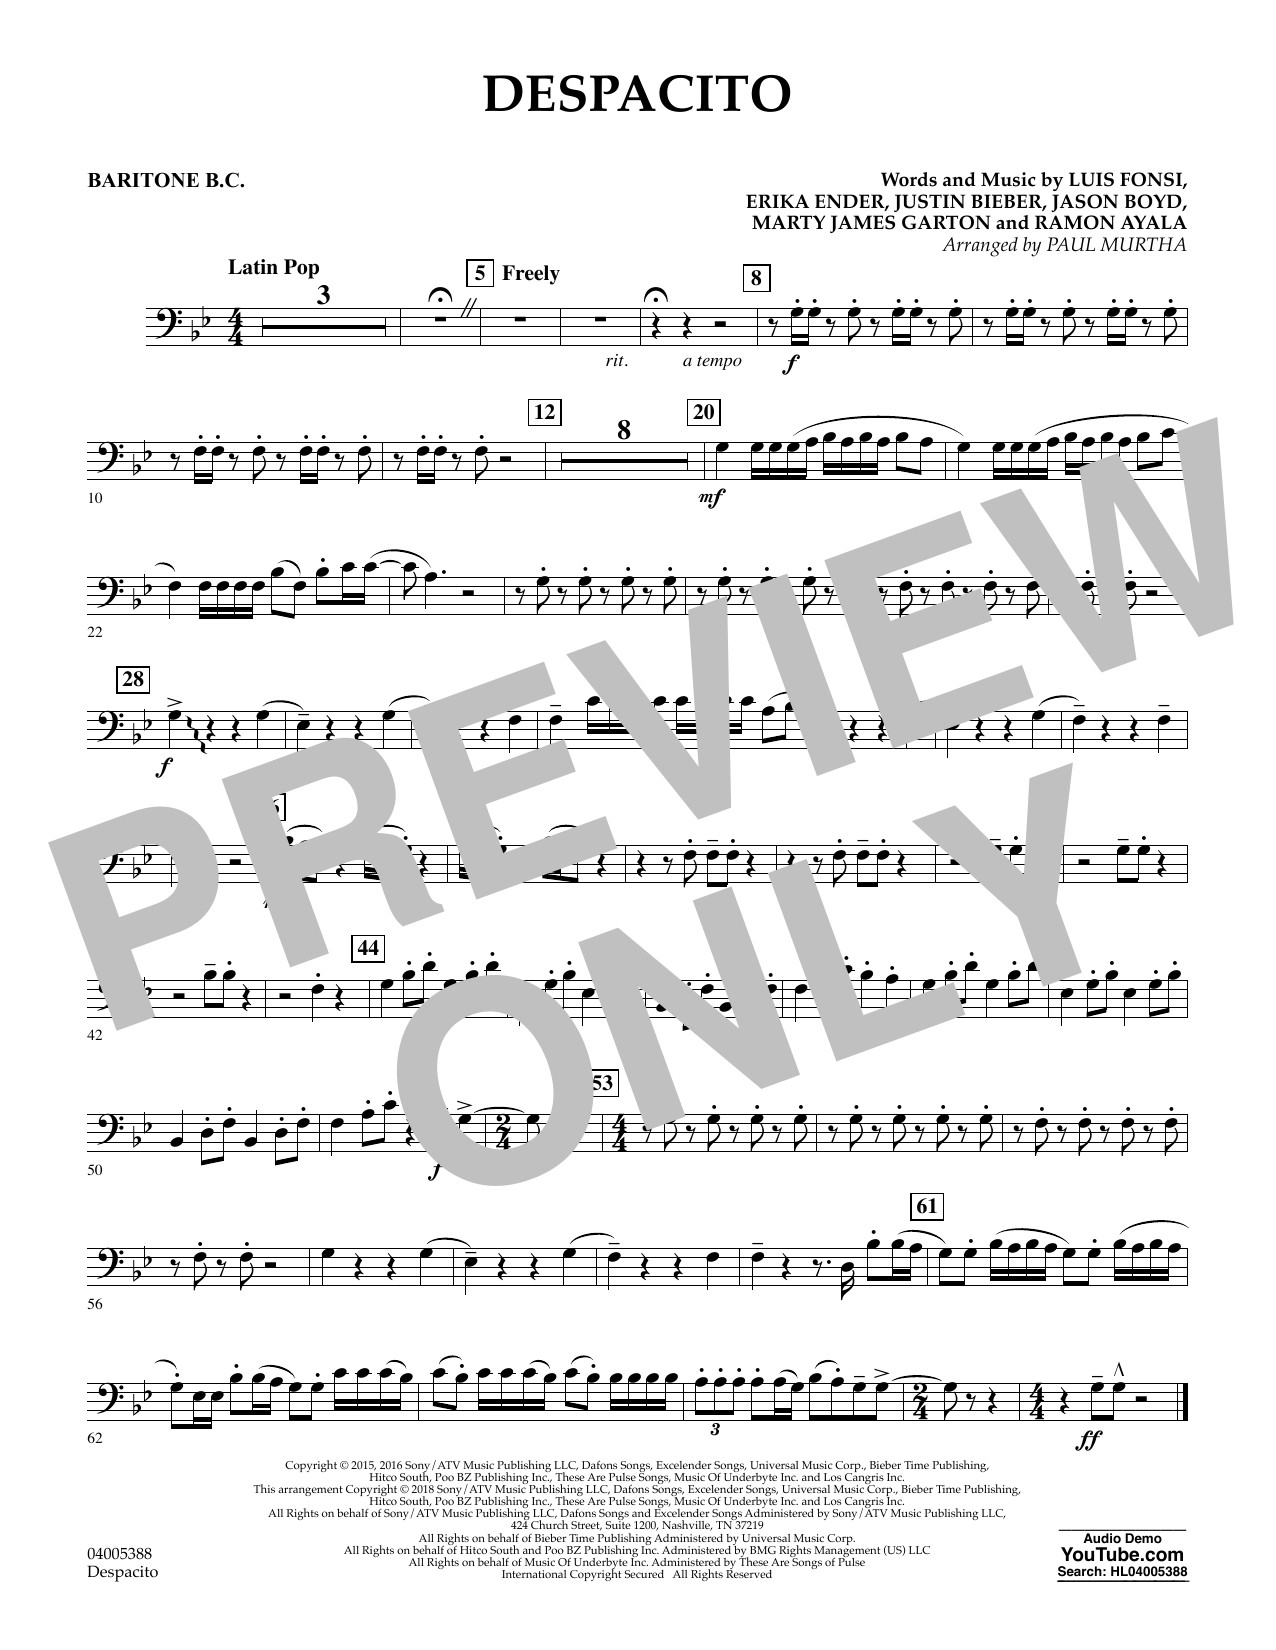 Luis Fonsi Despacito (feat. Daddy Yankee) (arr. Paul Murtha) - Baritone B.C. sheet music notes and chords. Download Printable PDF.